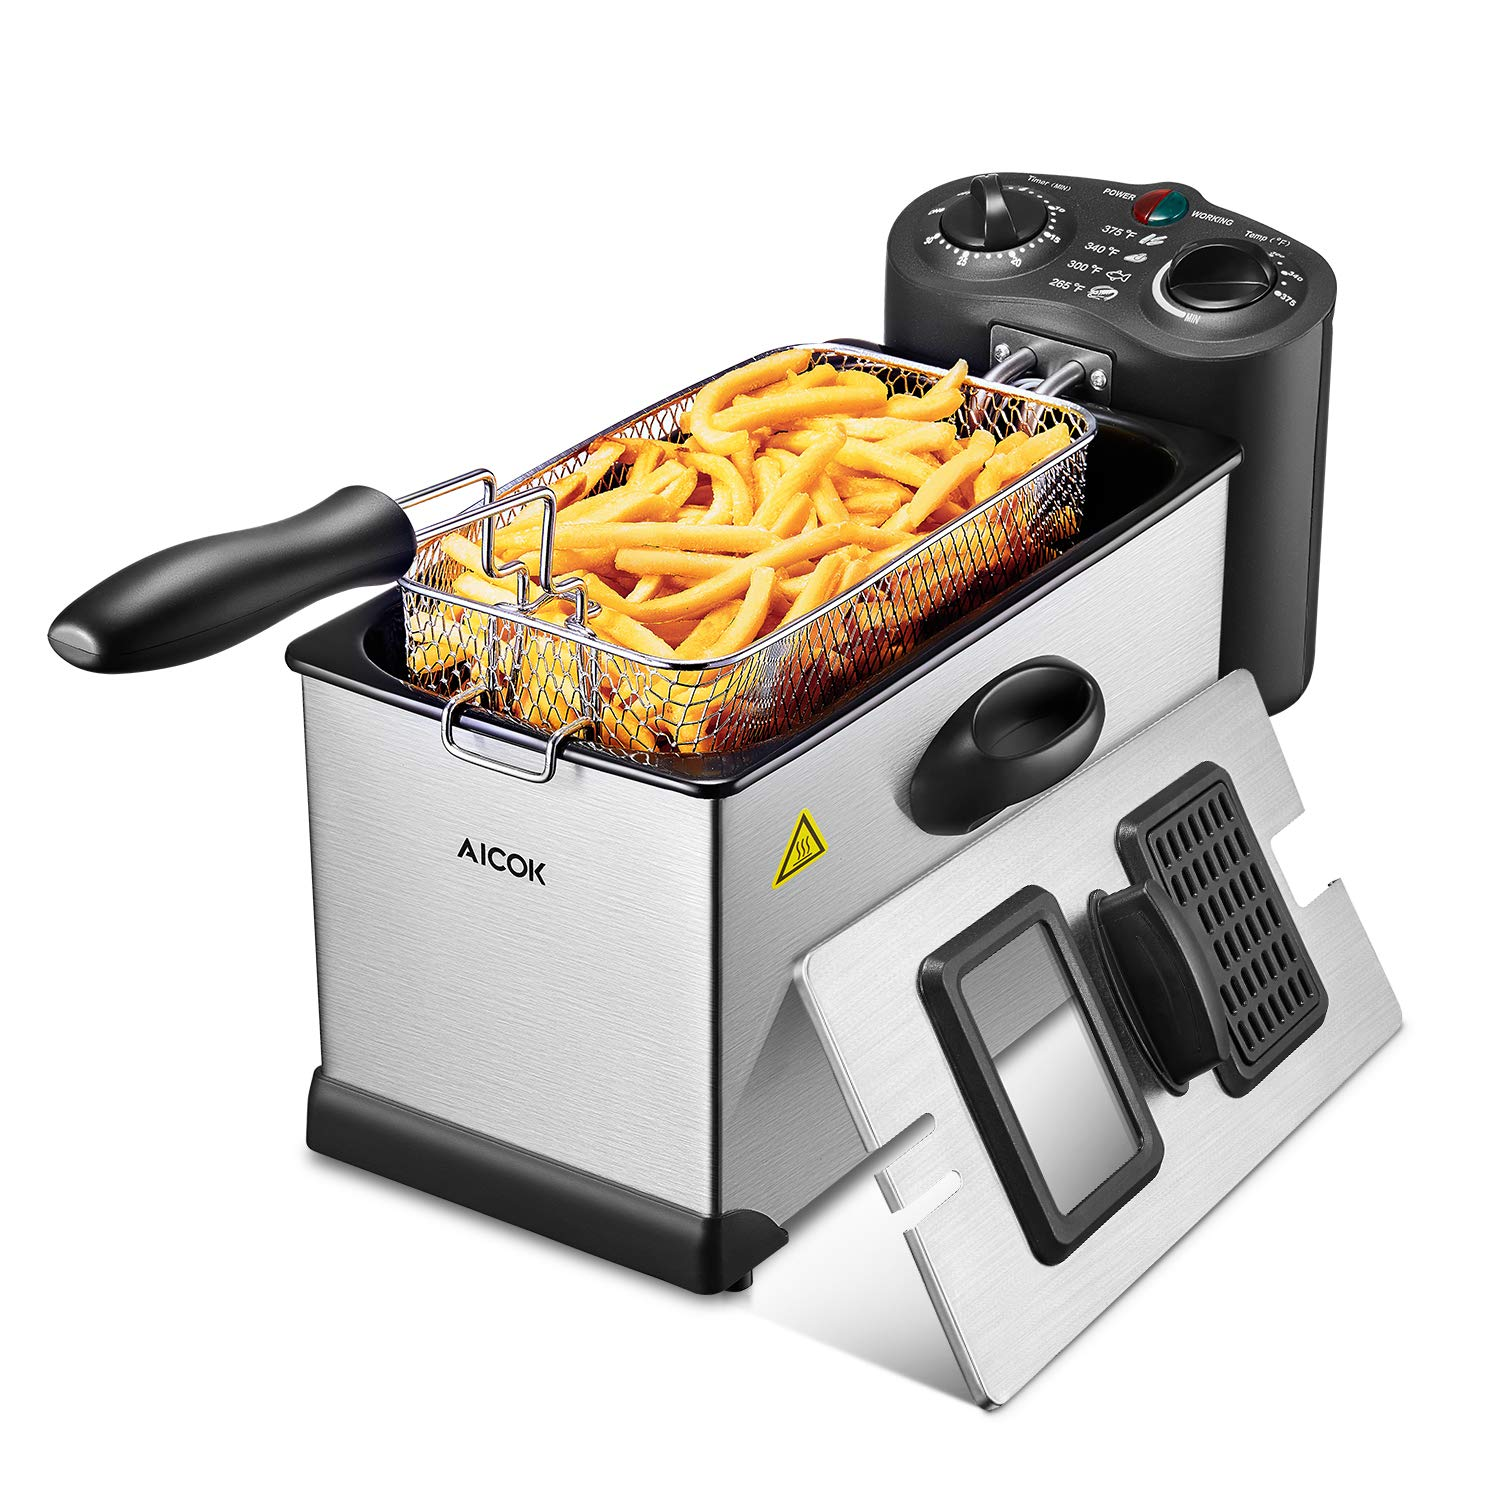 Aicok Deep Fryer, With Basket, 1700-Watt Stainless-Steel Oil Deep Fryer Machine with Adjustable Temperature Timer, Fully Removable, Professional Grade